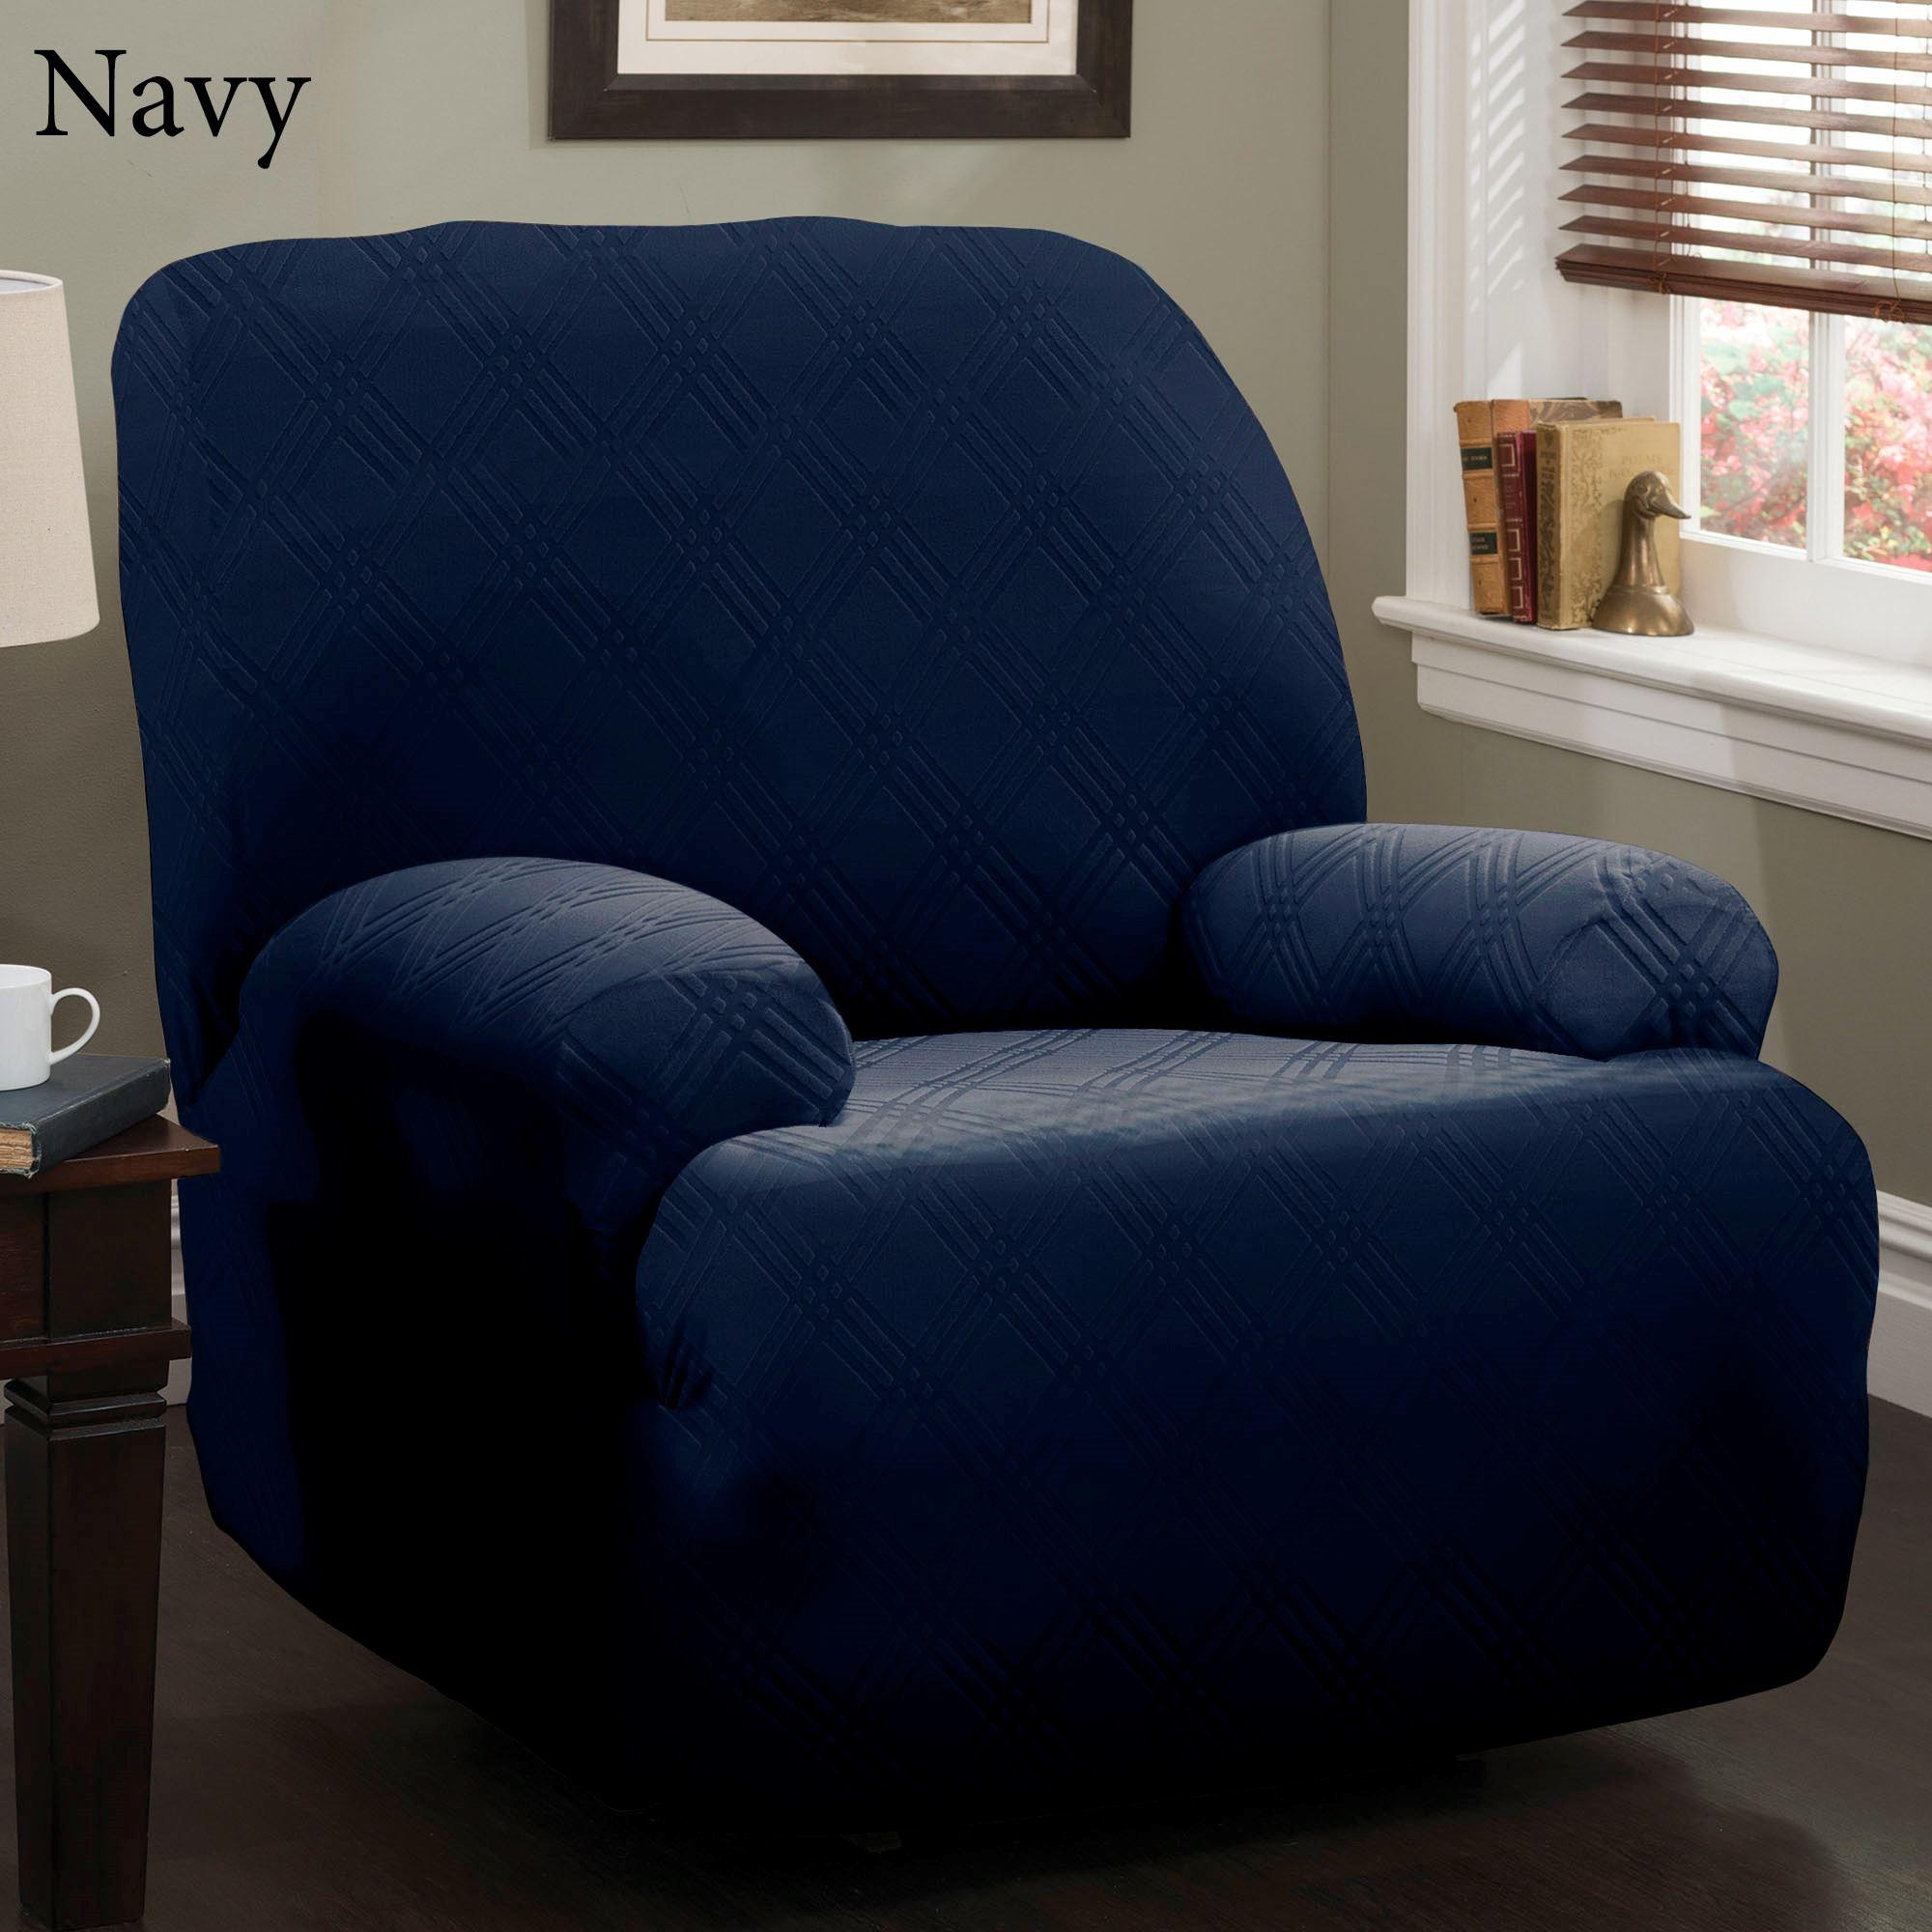 recliner fusion products navy american furniture teal recliners manufacturing